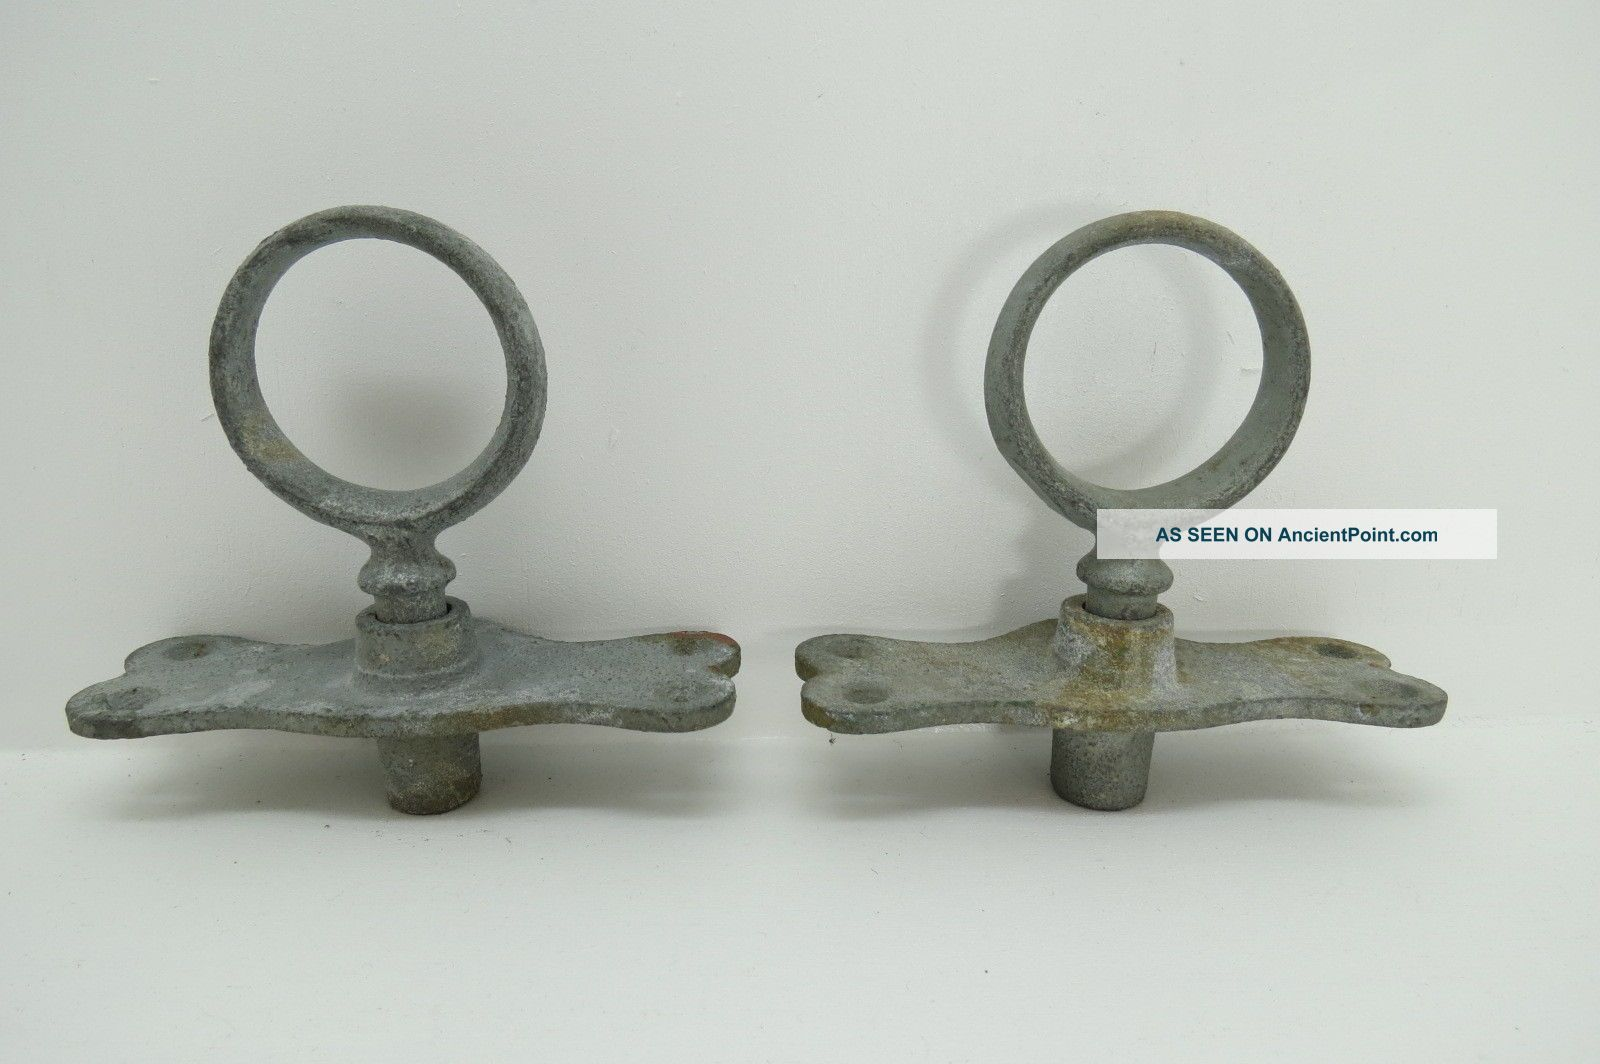 Galvanized Pair 2 Inch Oar Locks & Mounts For Row Boat (463) Other Maritime Antiques photo